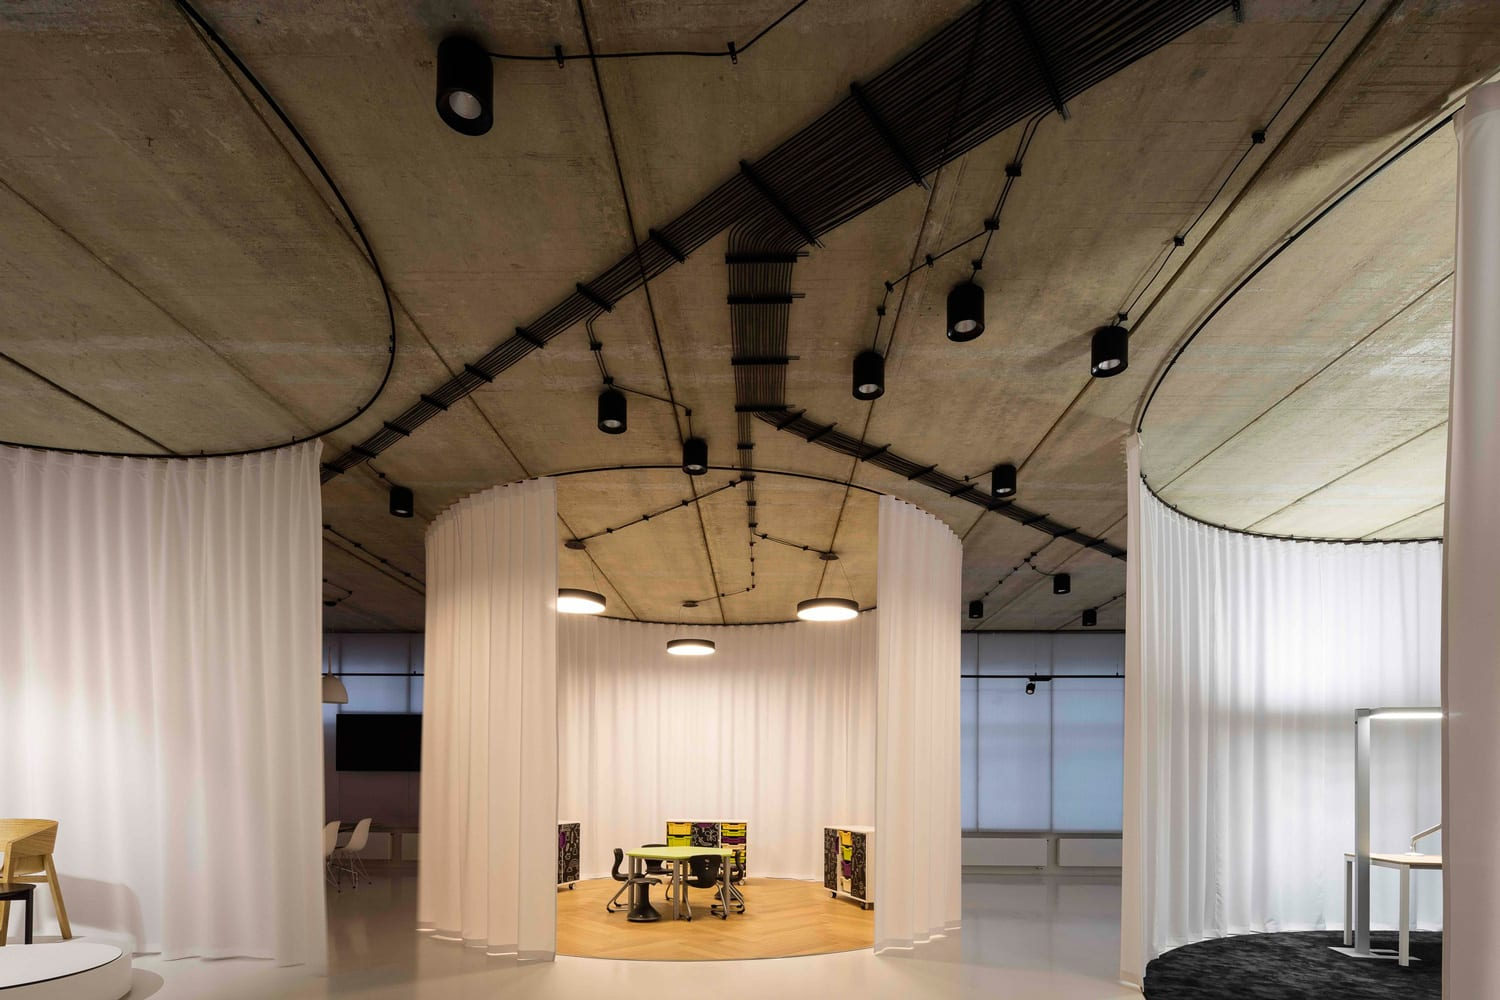 Gallery Of Furniture in Brno, Czech Republic by CHYBIK + KRISTOF | Yellowtrace